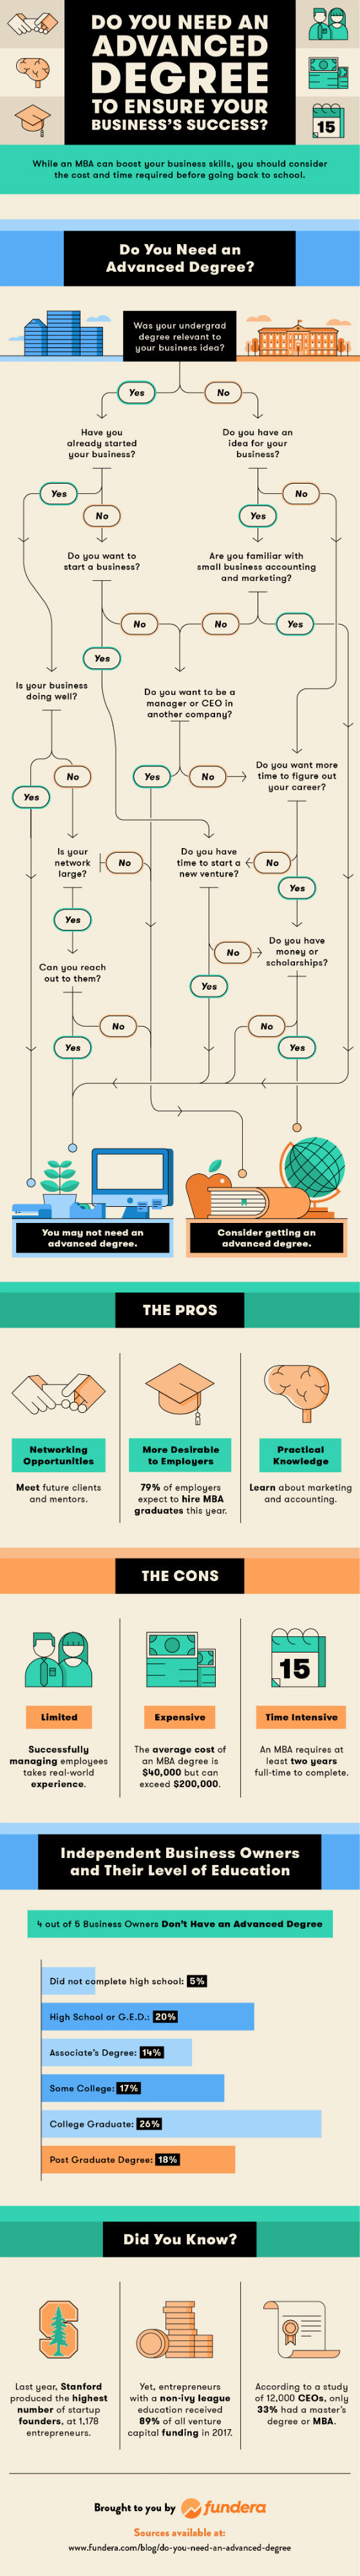 Do You Really Need an Advanced Degree To Ensure Your Business's Success? [Infographic]